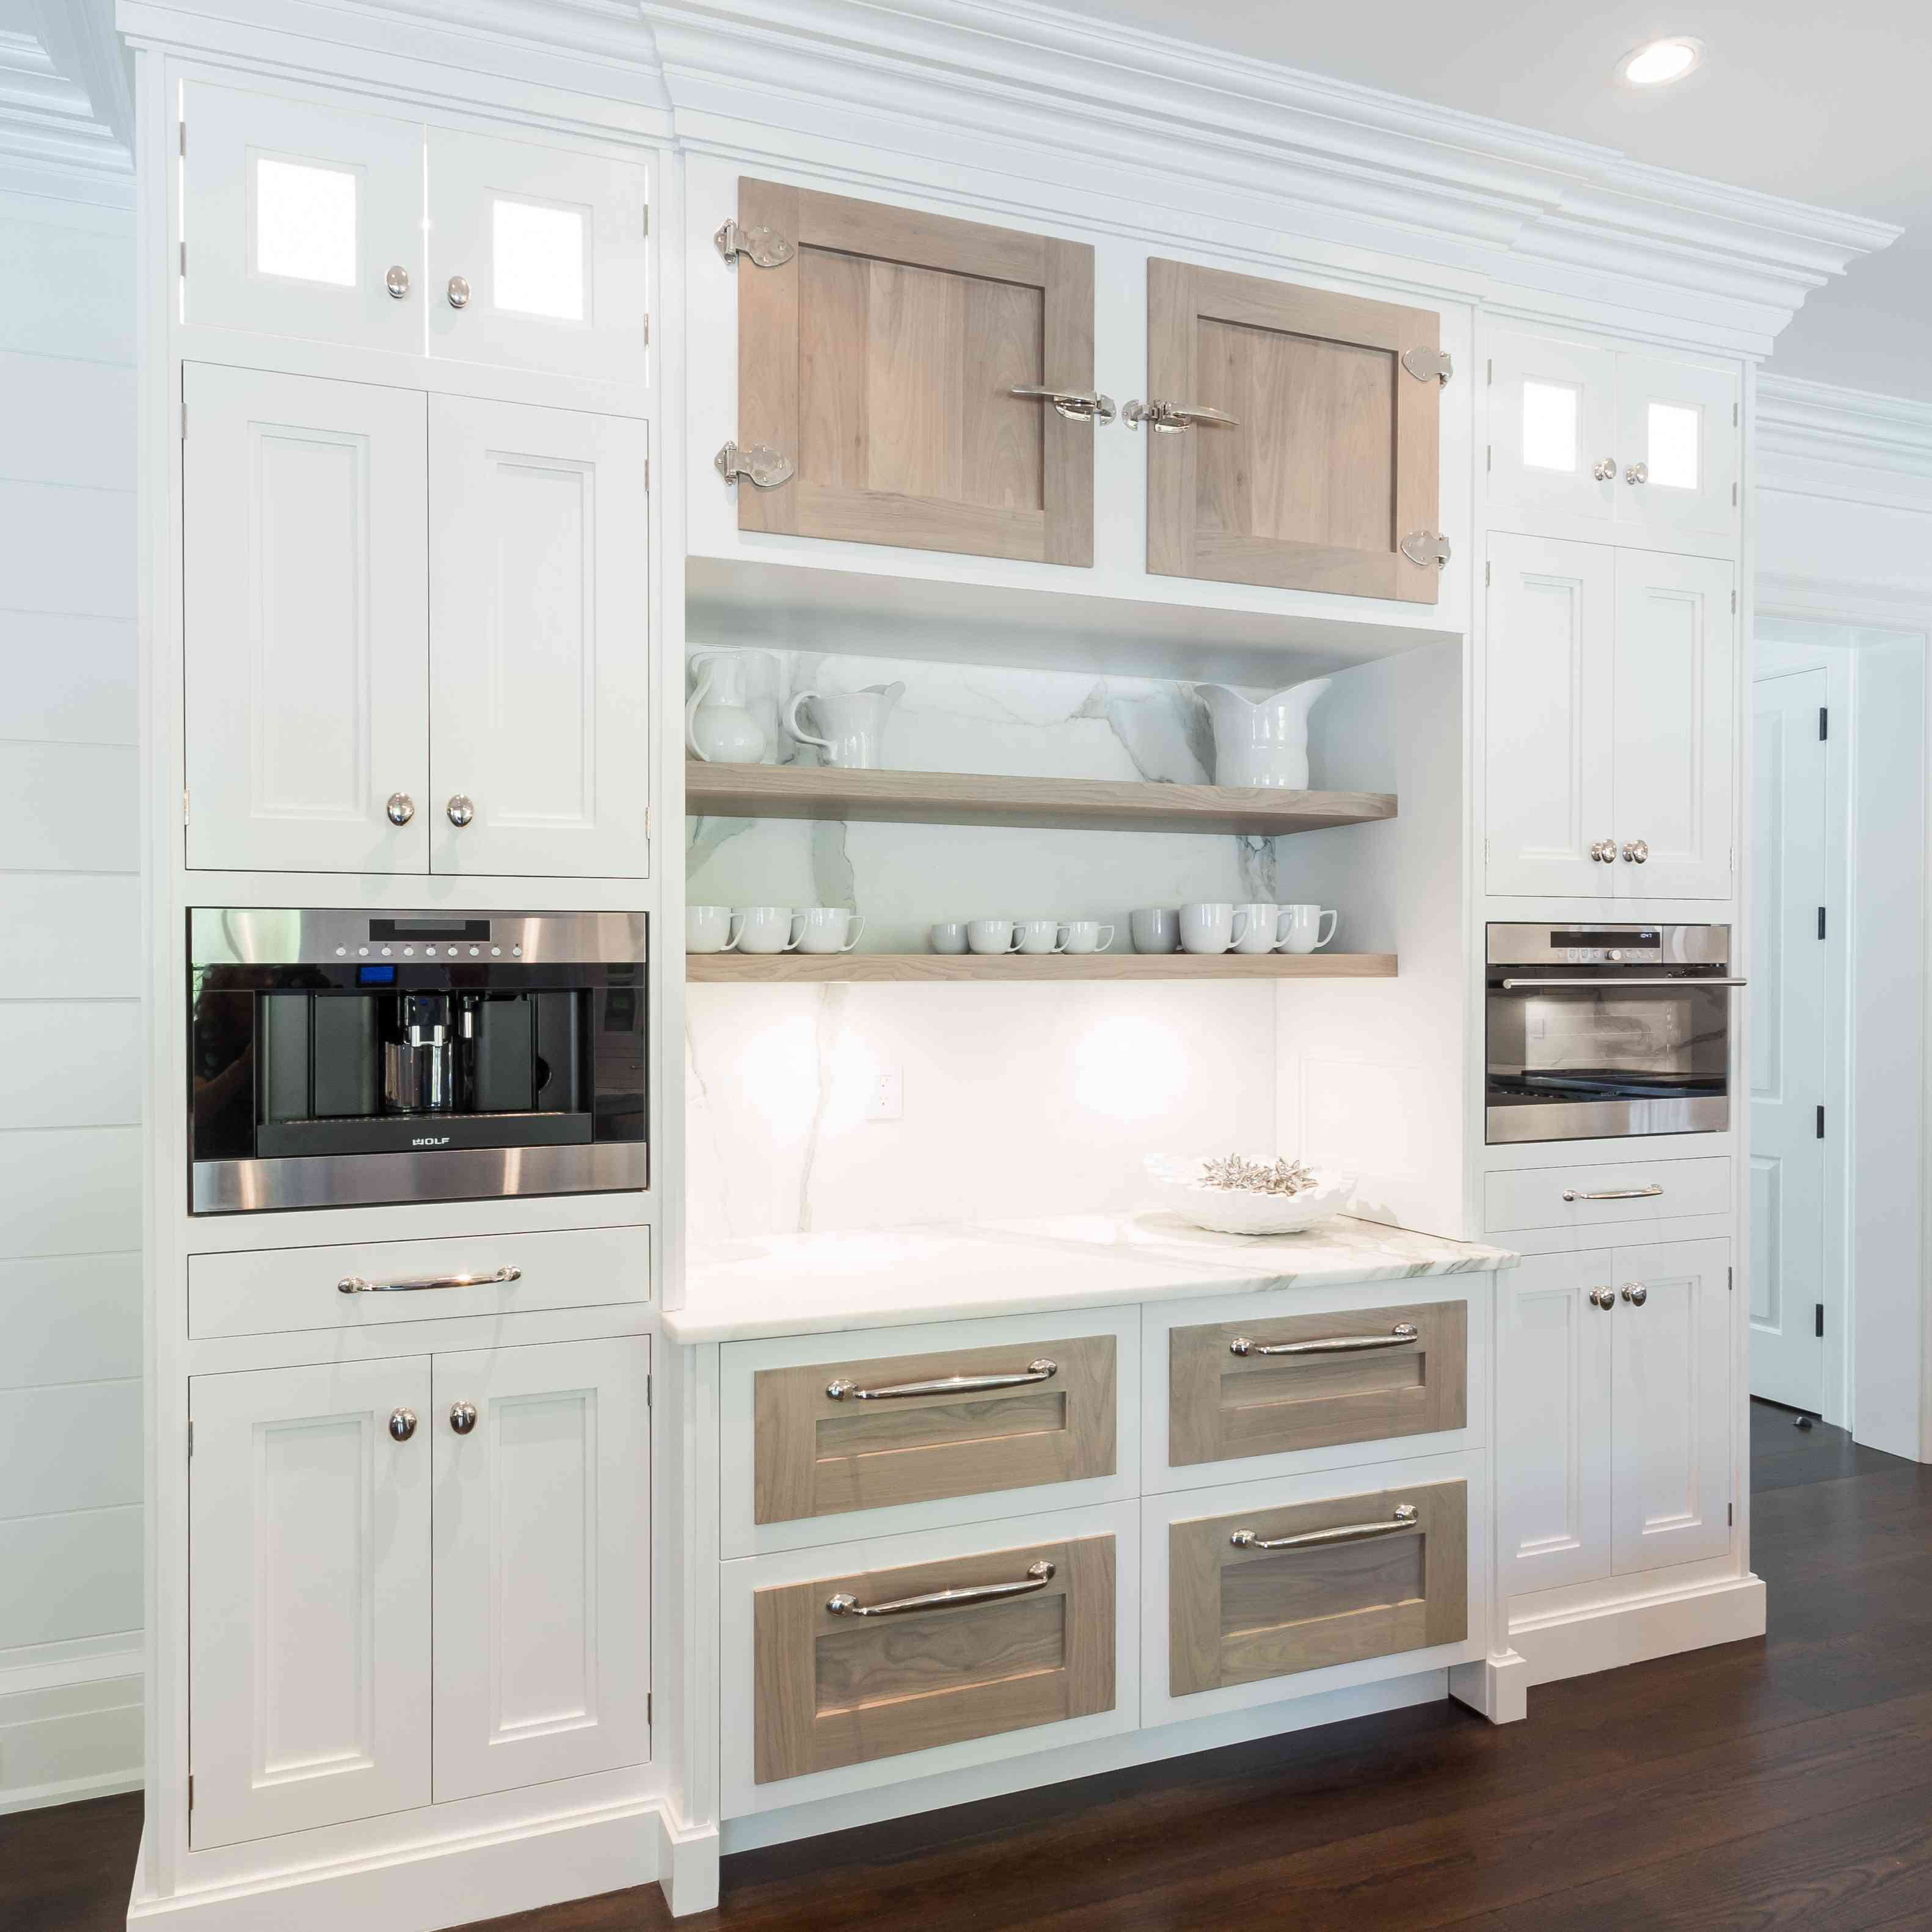 Secondary prep space in kitchen by Bakes & Kropp